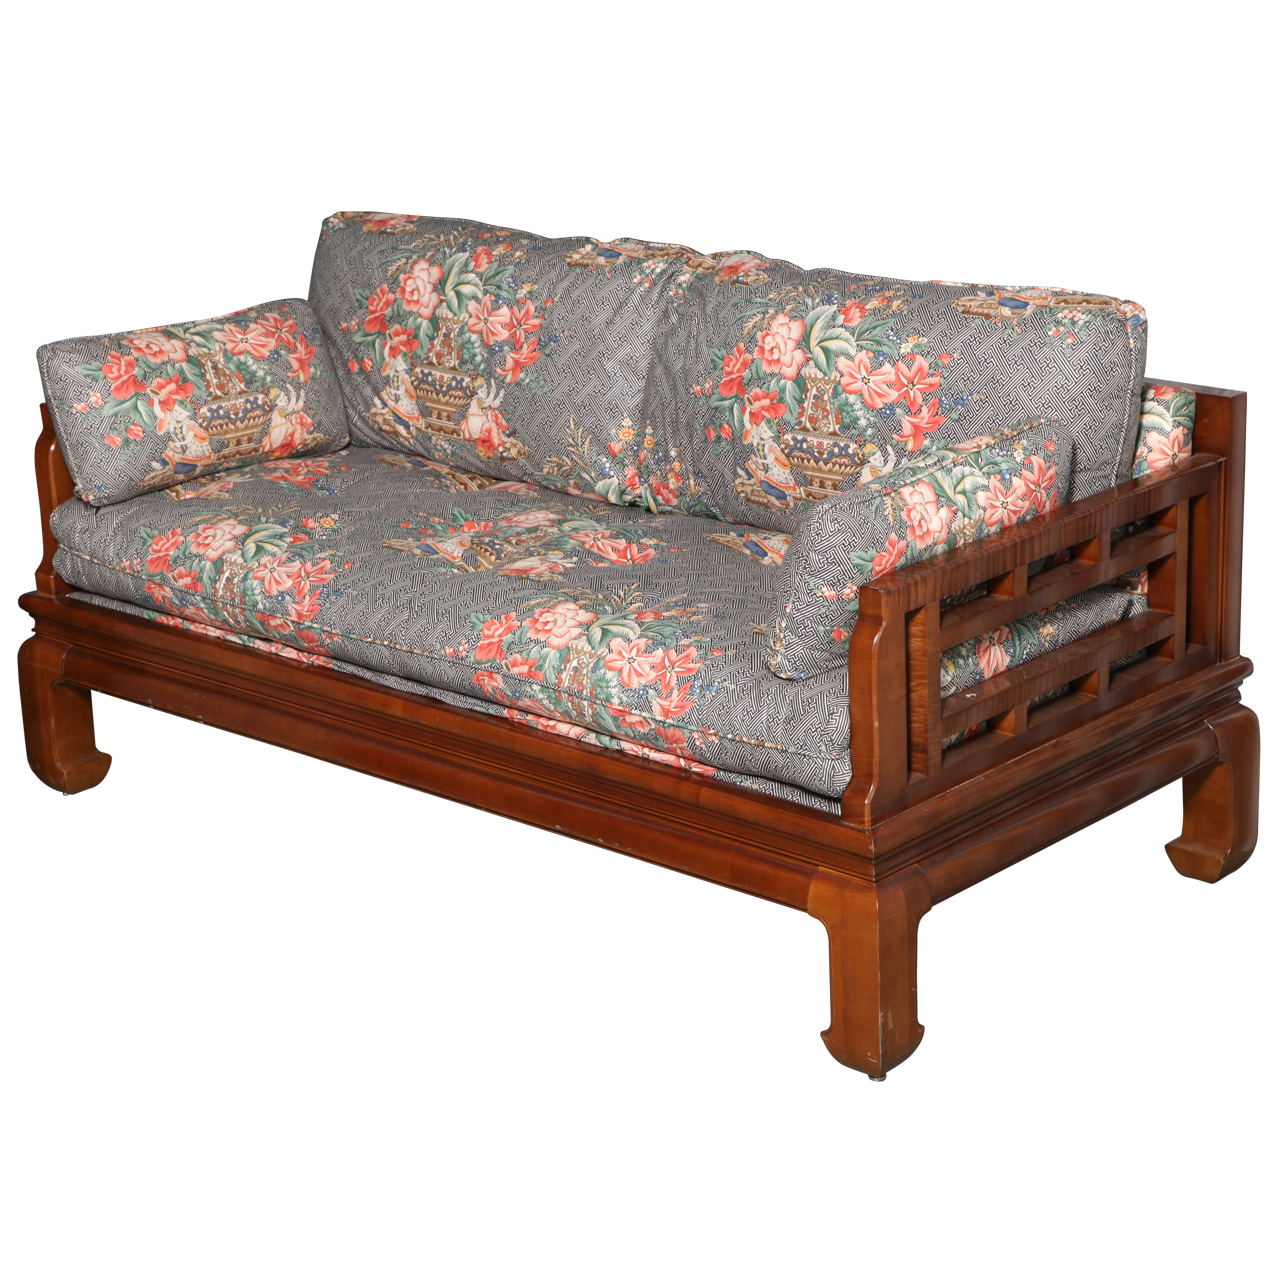 Michael taylor baker furniture asian style sofa online for Oriental sofa designs